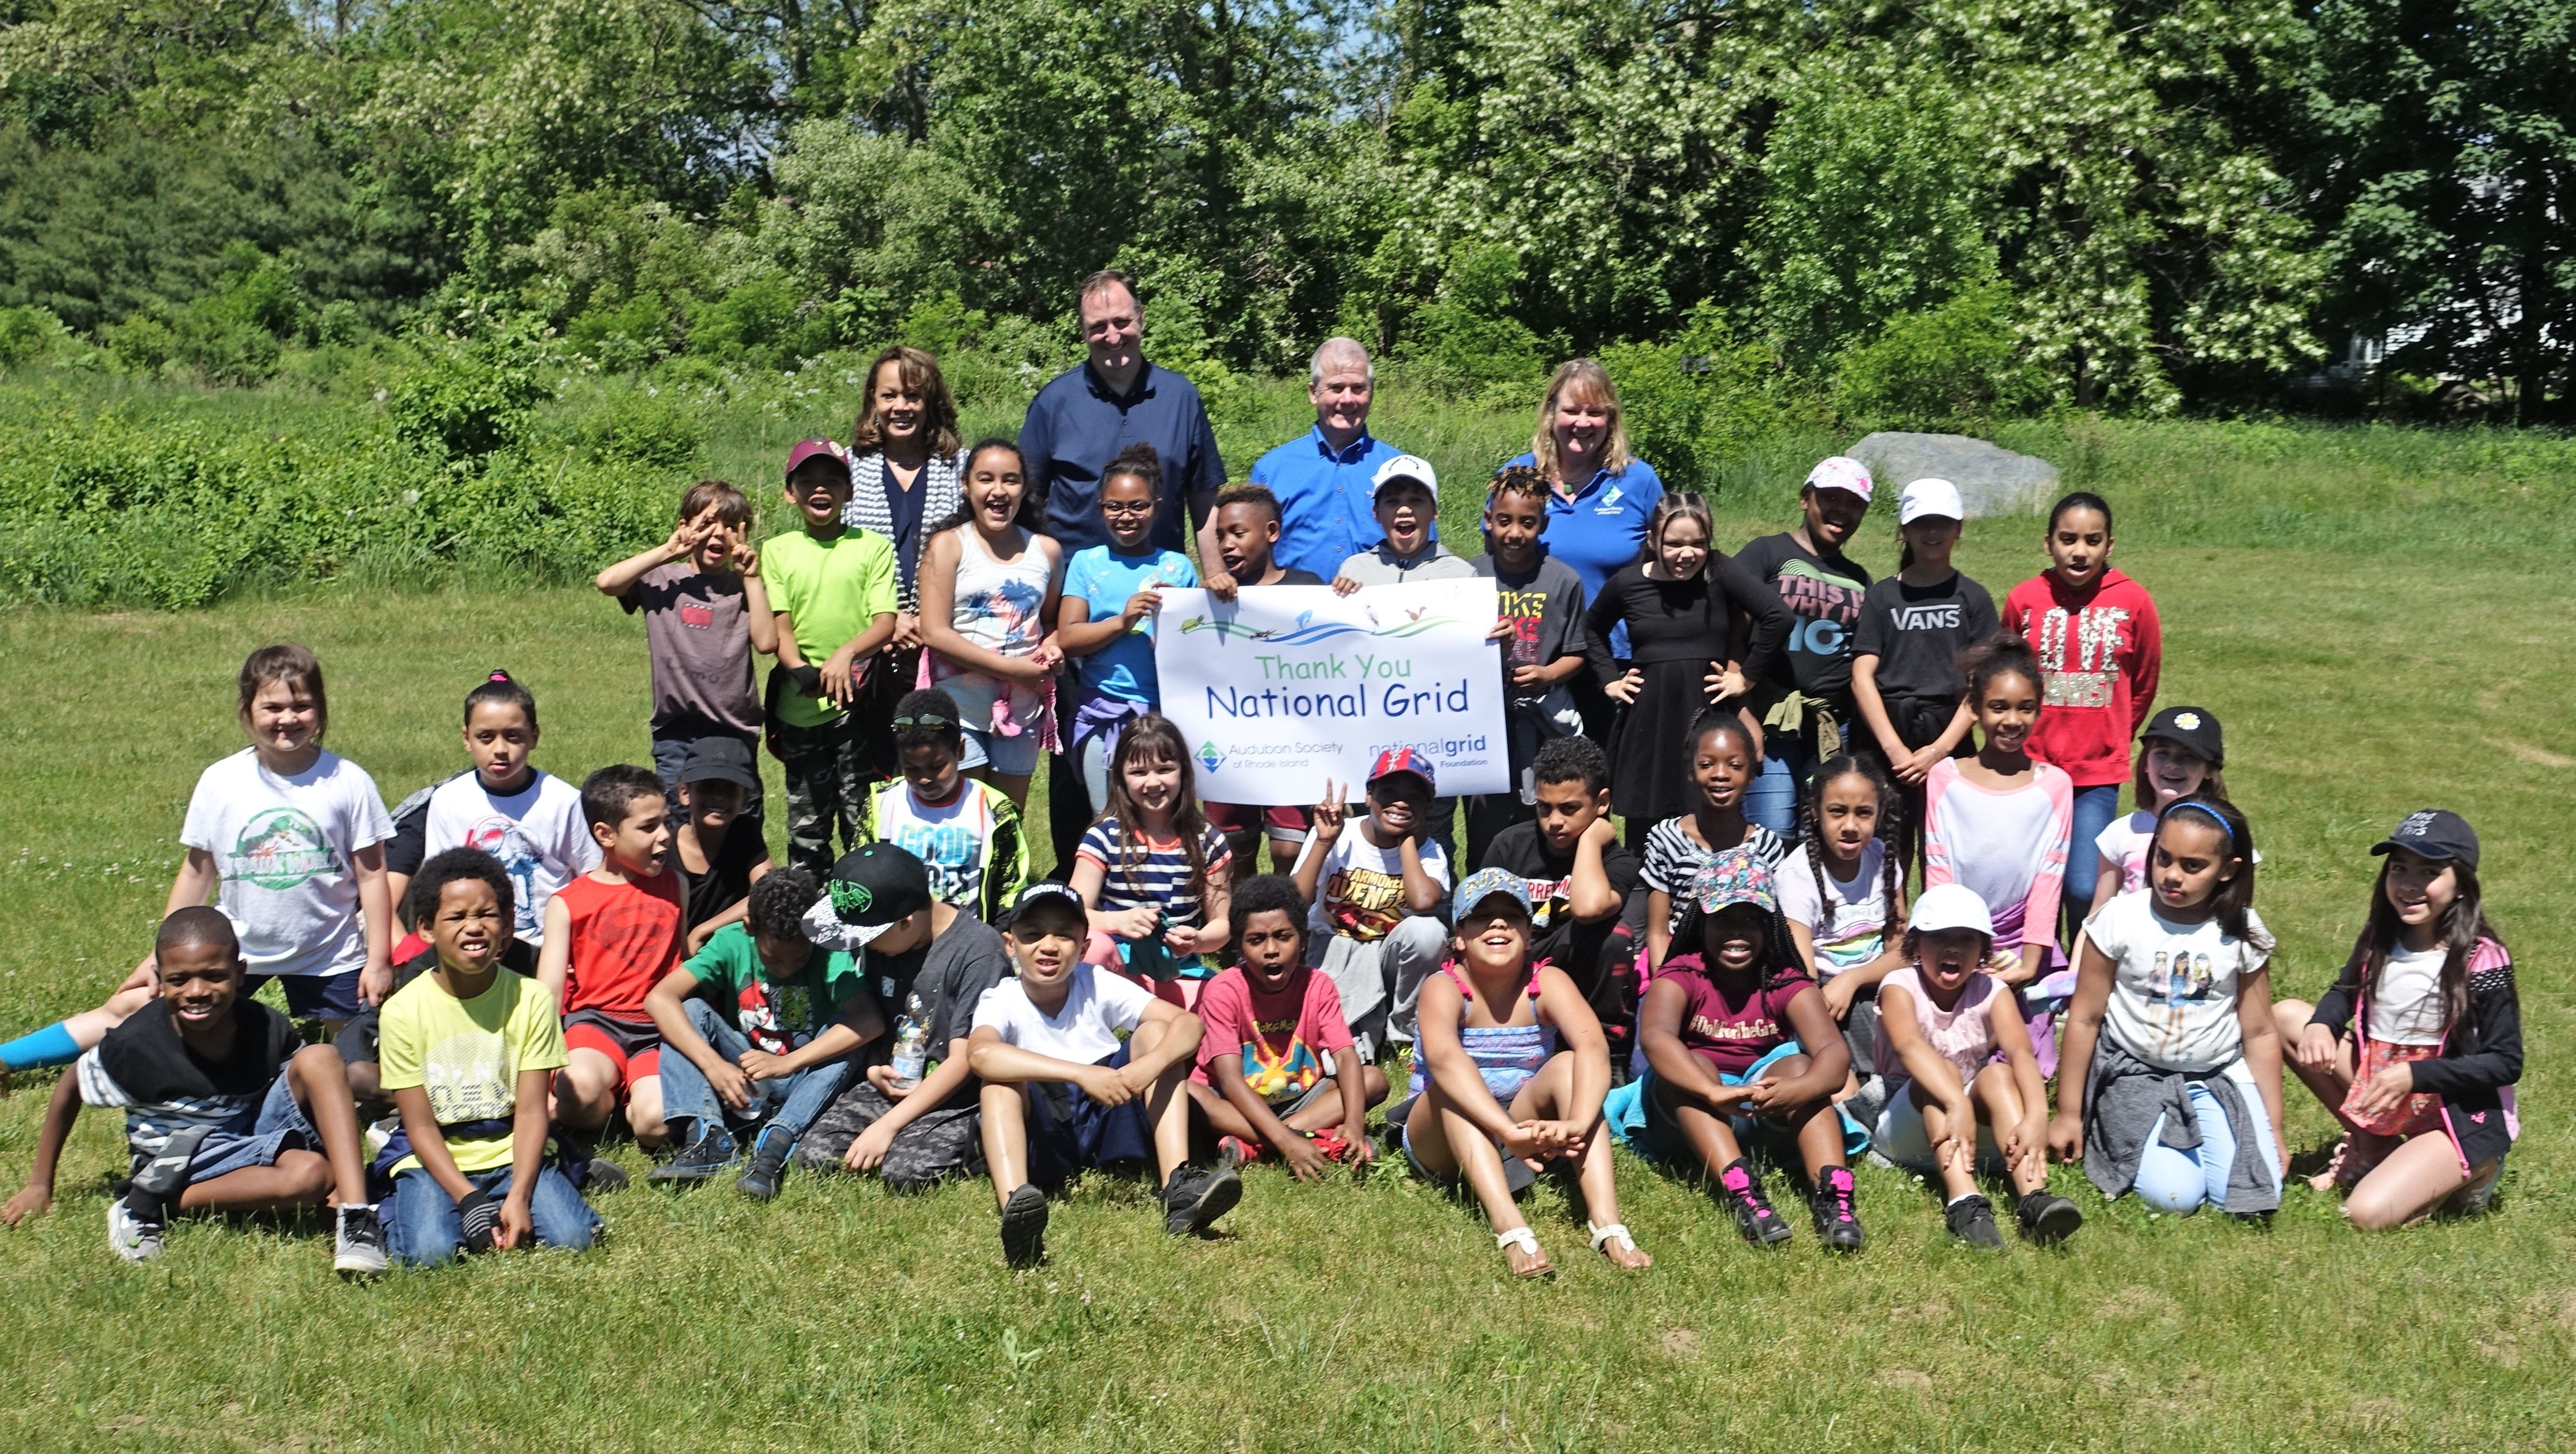 Audubon Receives $20,000 Grant From The National Grid Foundation